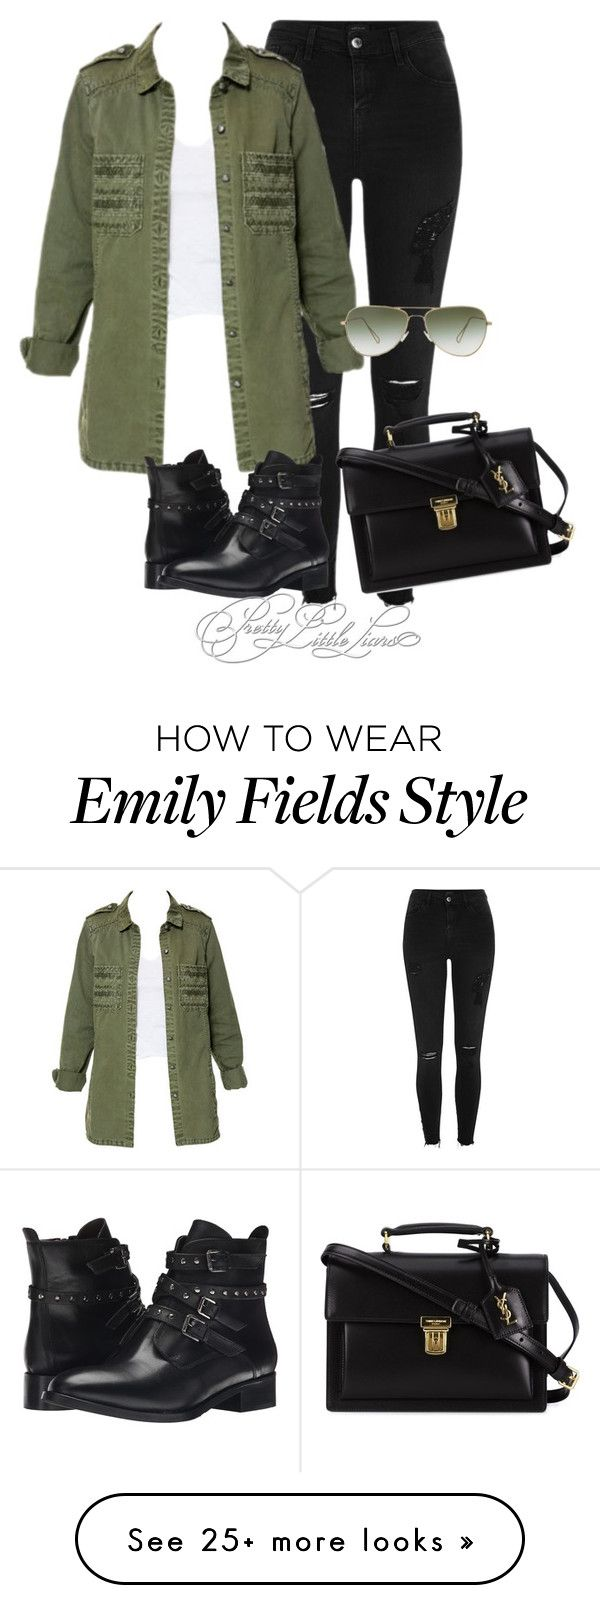 """Emily Fields inspired outfit"" by vane-abreu on Polyvore featuring River Island, Zara, Isabel Marant, Yves Saint Laurent and Bella-Vita"